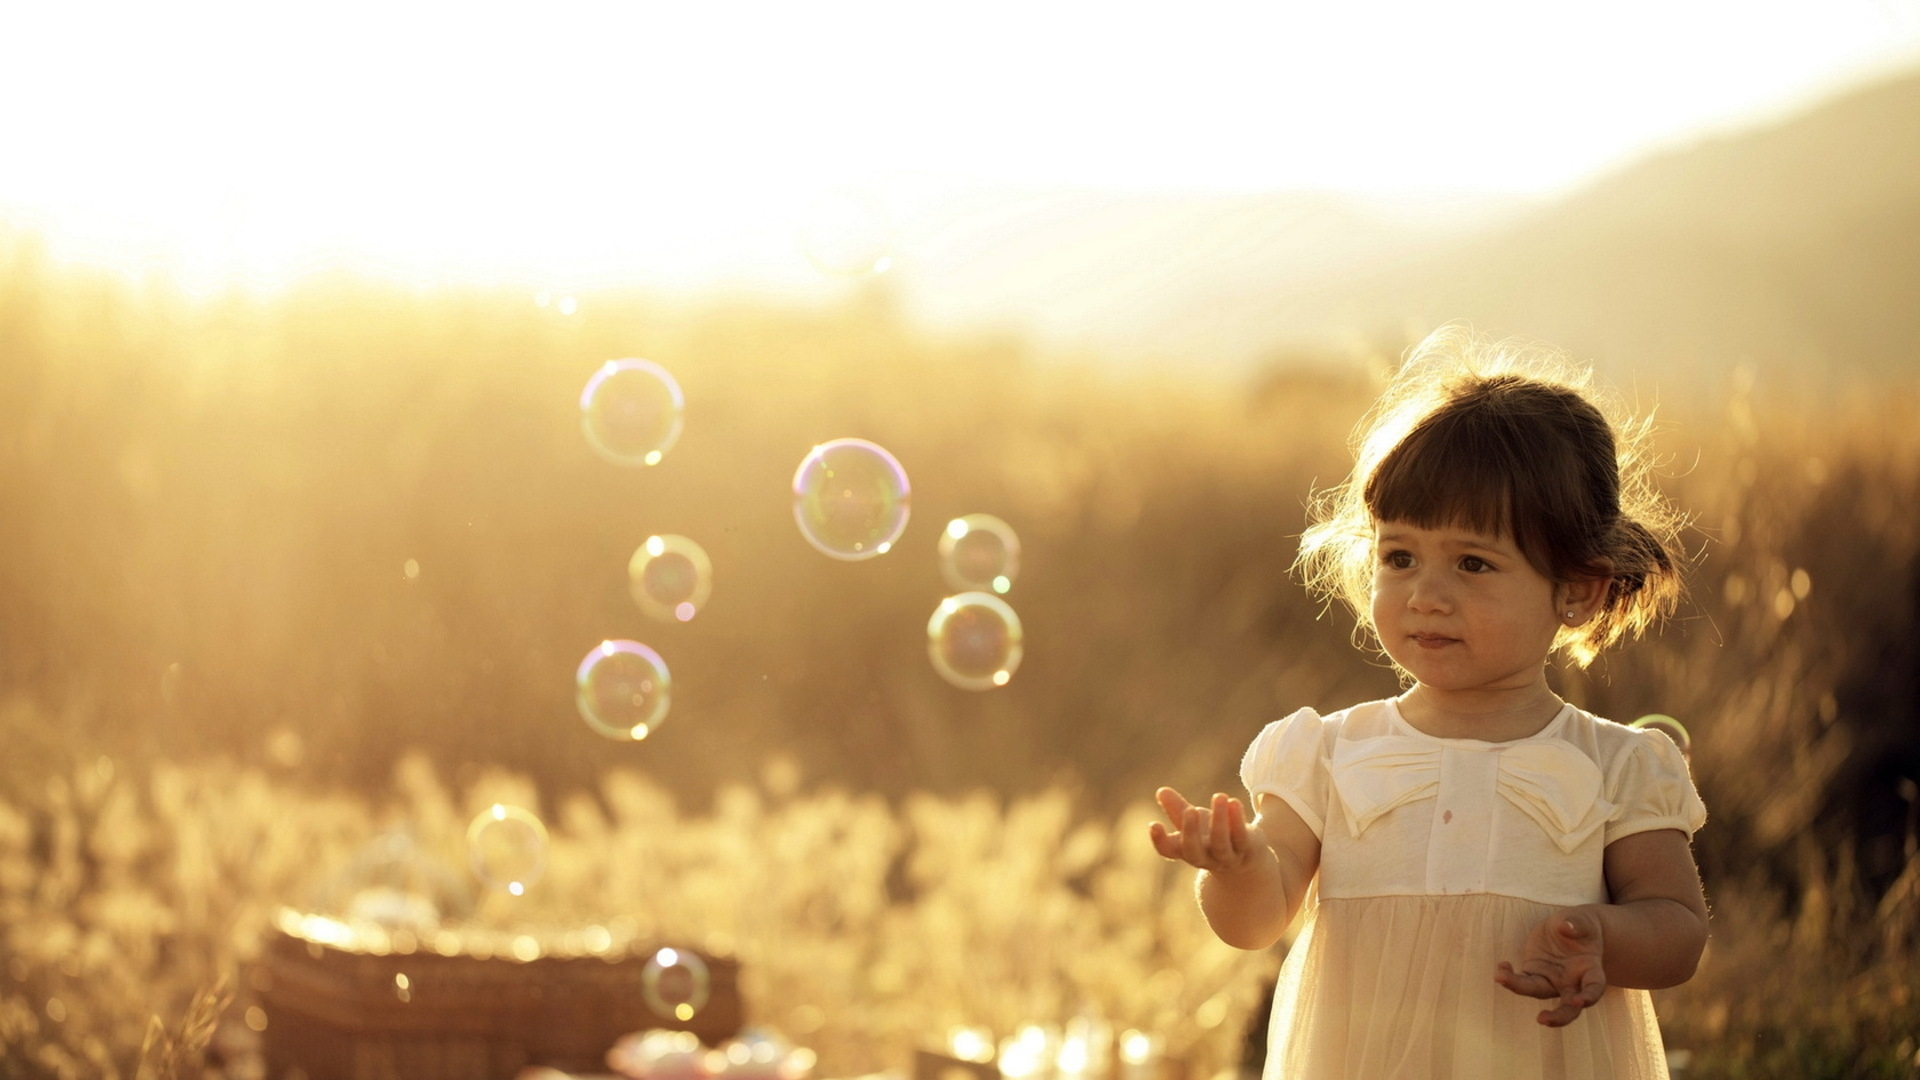 1920x1080-girl-summer-light-bubbles-wallpaper-wpc9001009